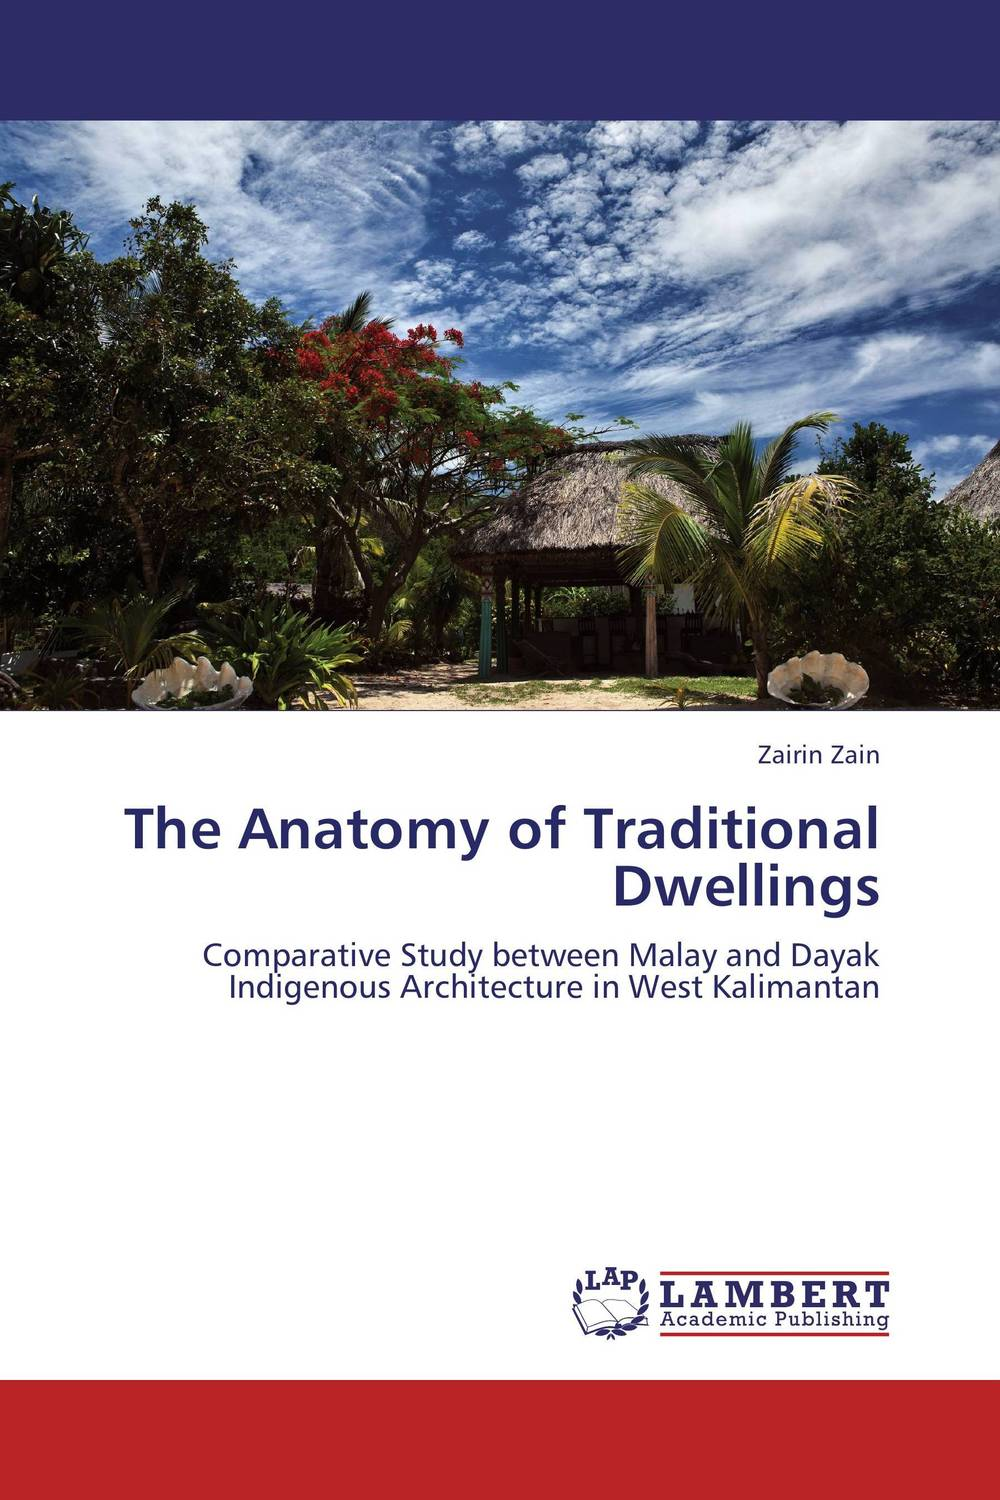 The Anatomy of Traditional Dwellings eka devidze the first dwellings